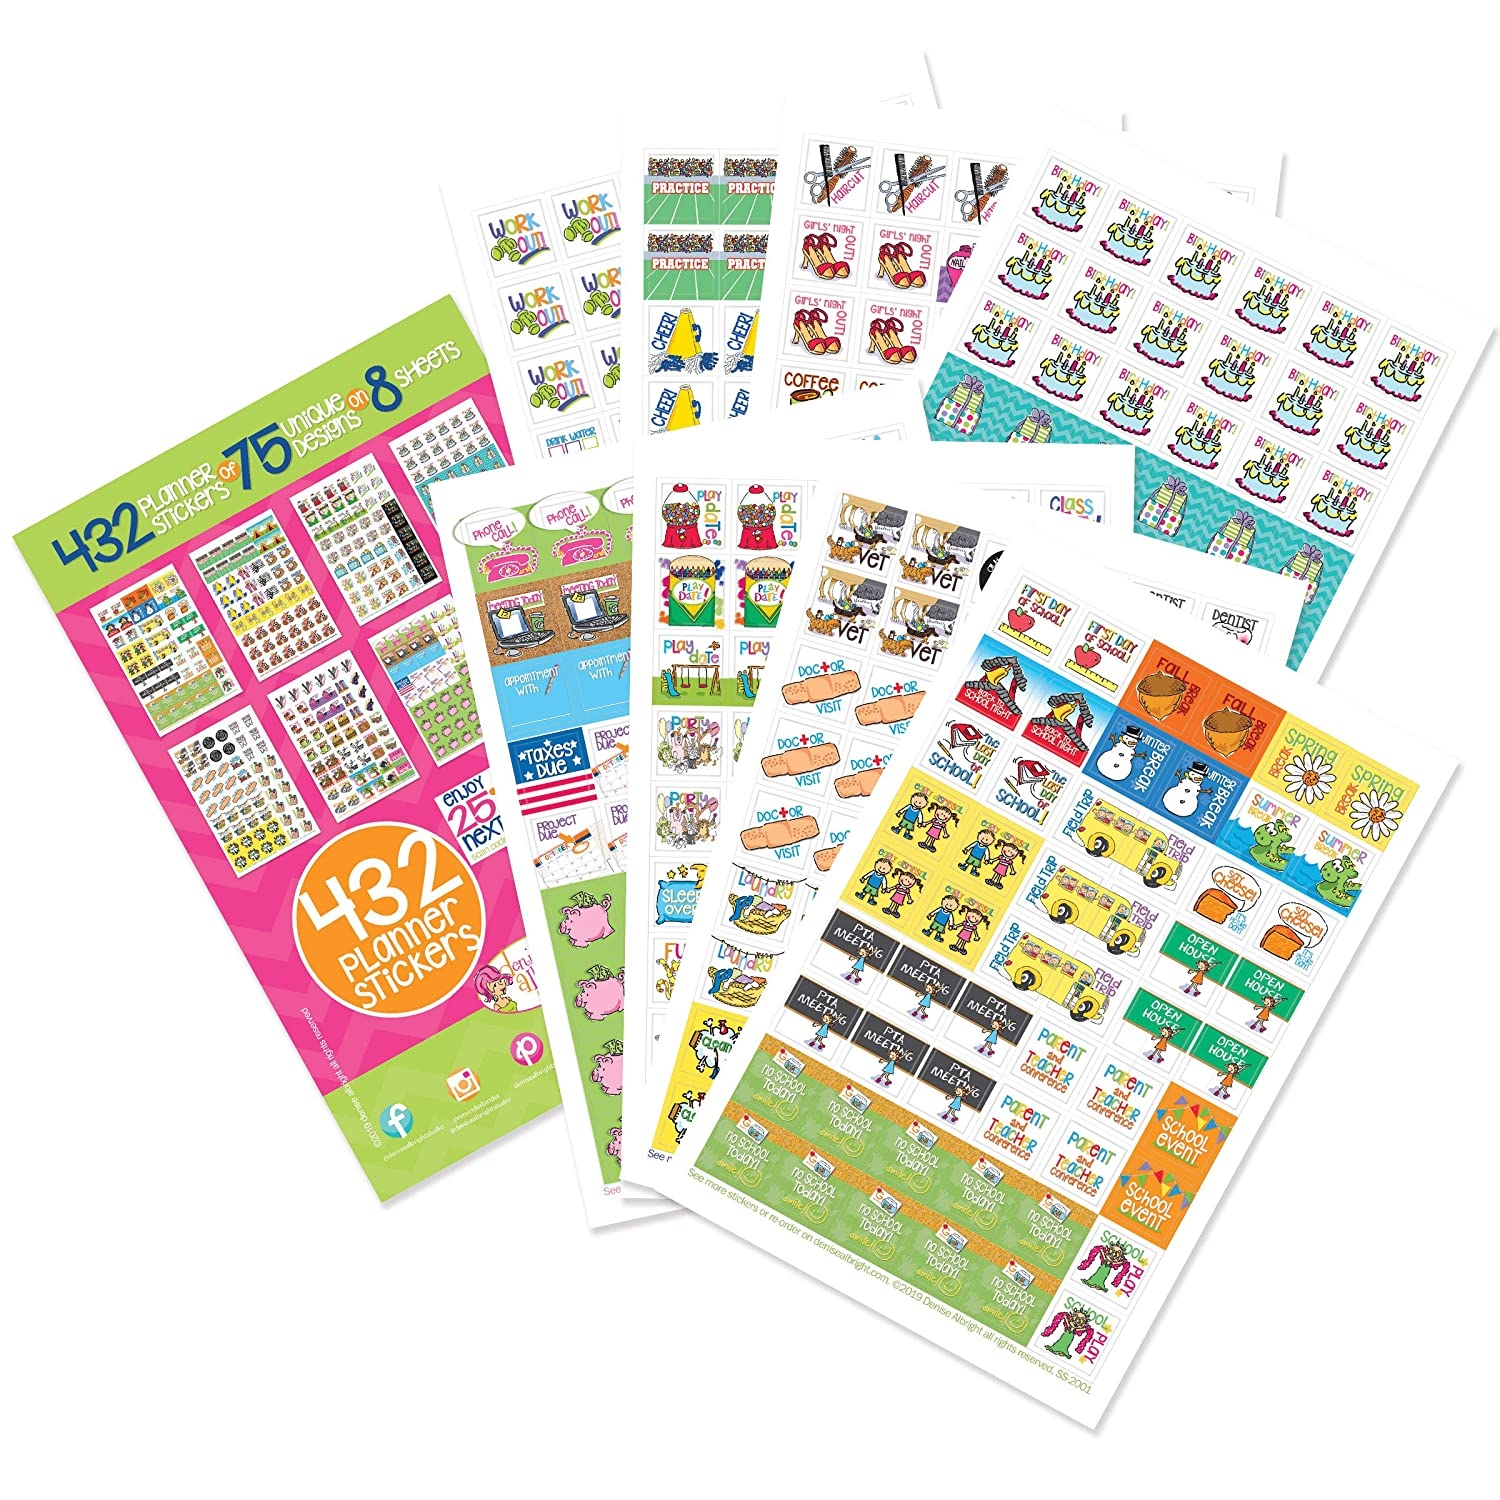 photo about Free Printable Qdro Forms referred to as 432 Planner Stickers - Chaotic Mother Selection for Calendars, Planners. Appointment Reminder Stickers, Health professionals, Faculty, Birthdays, Enjoy Dates, Gatherings,